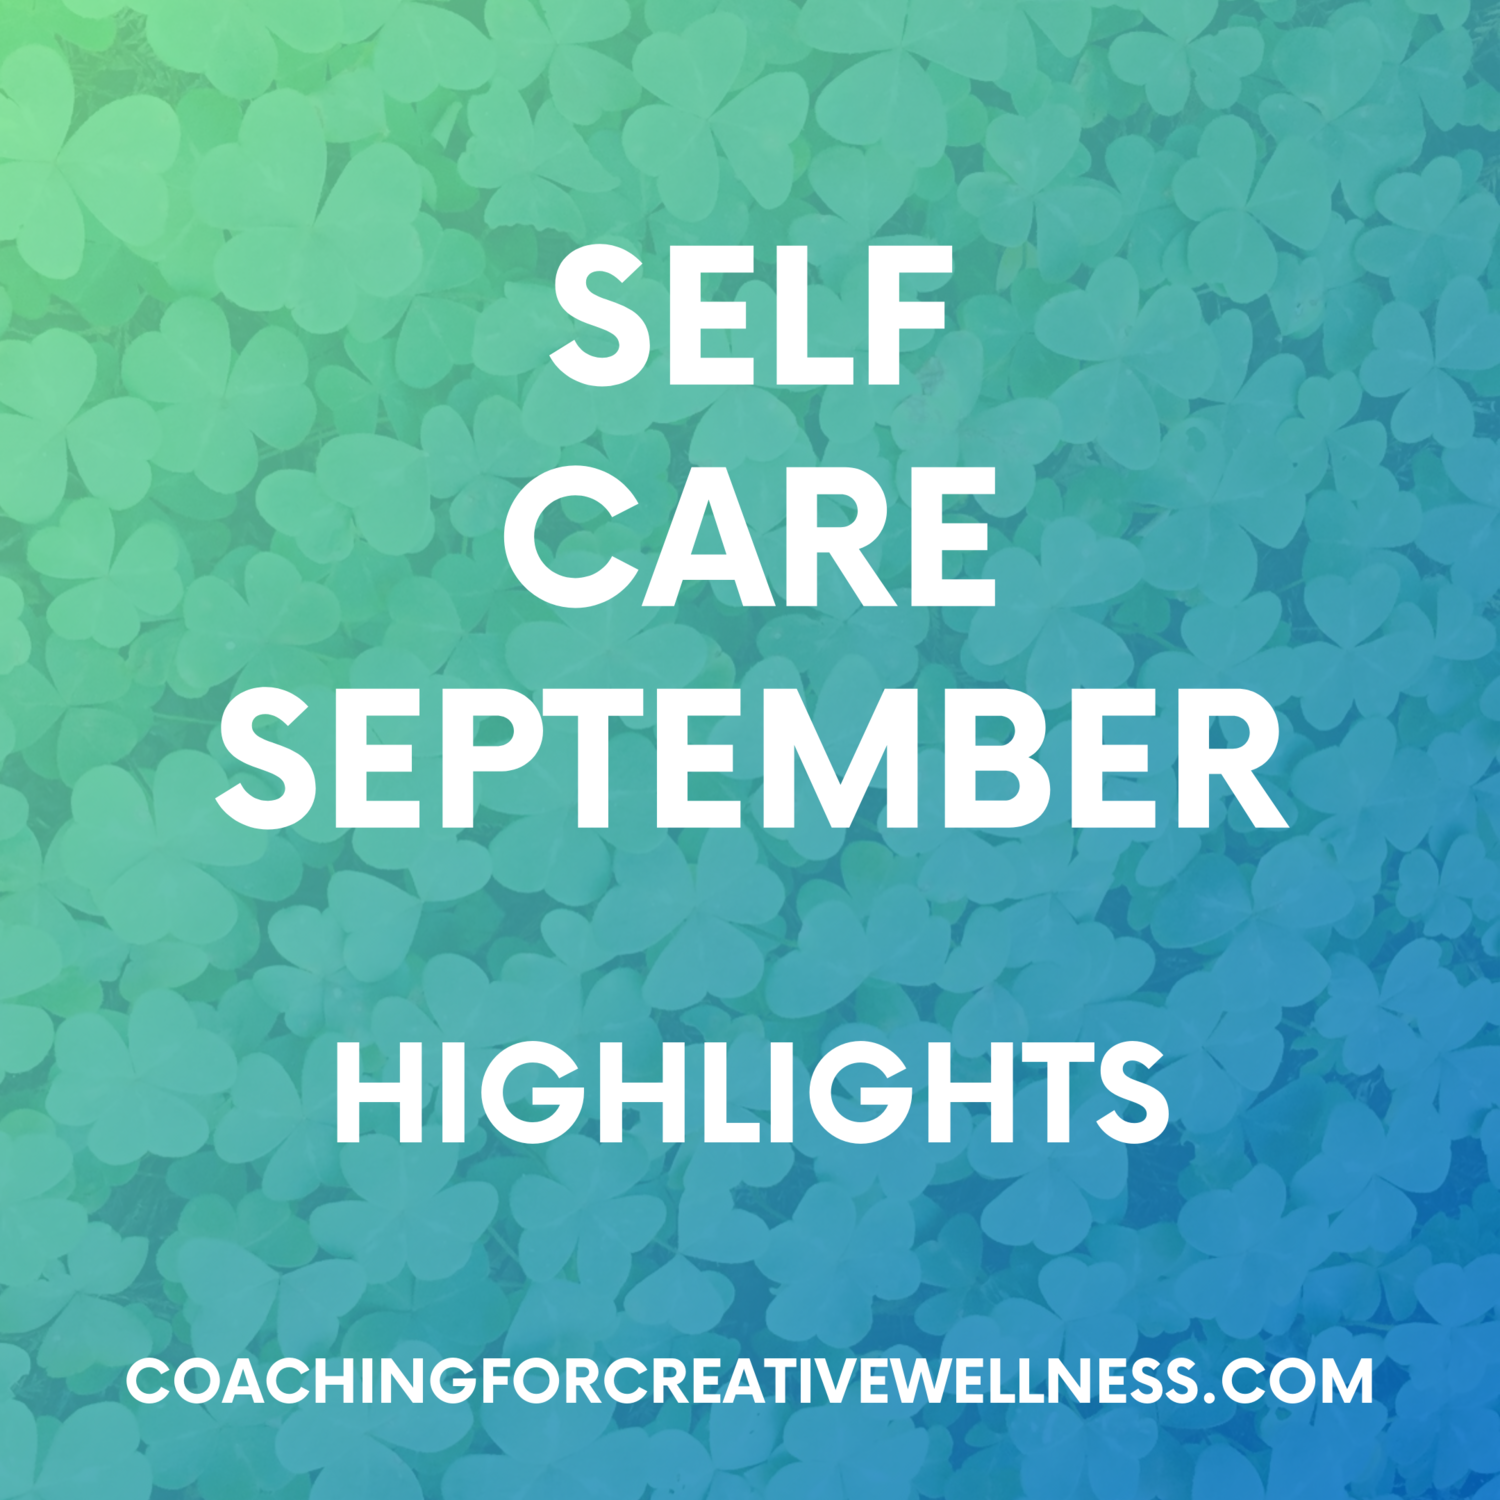 Coaching-for-Creative-Wellness-Self-Care-September-highlights.png